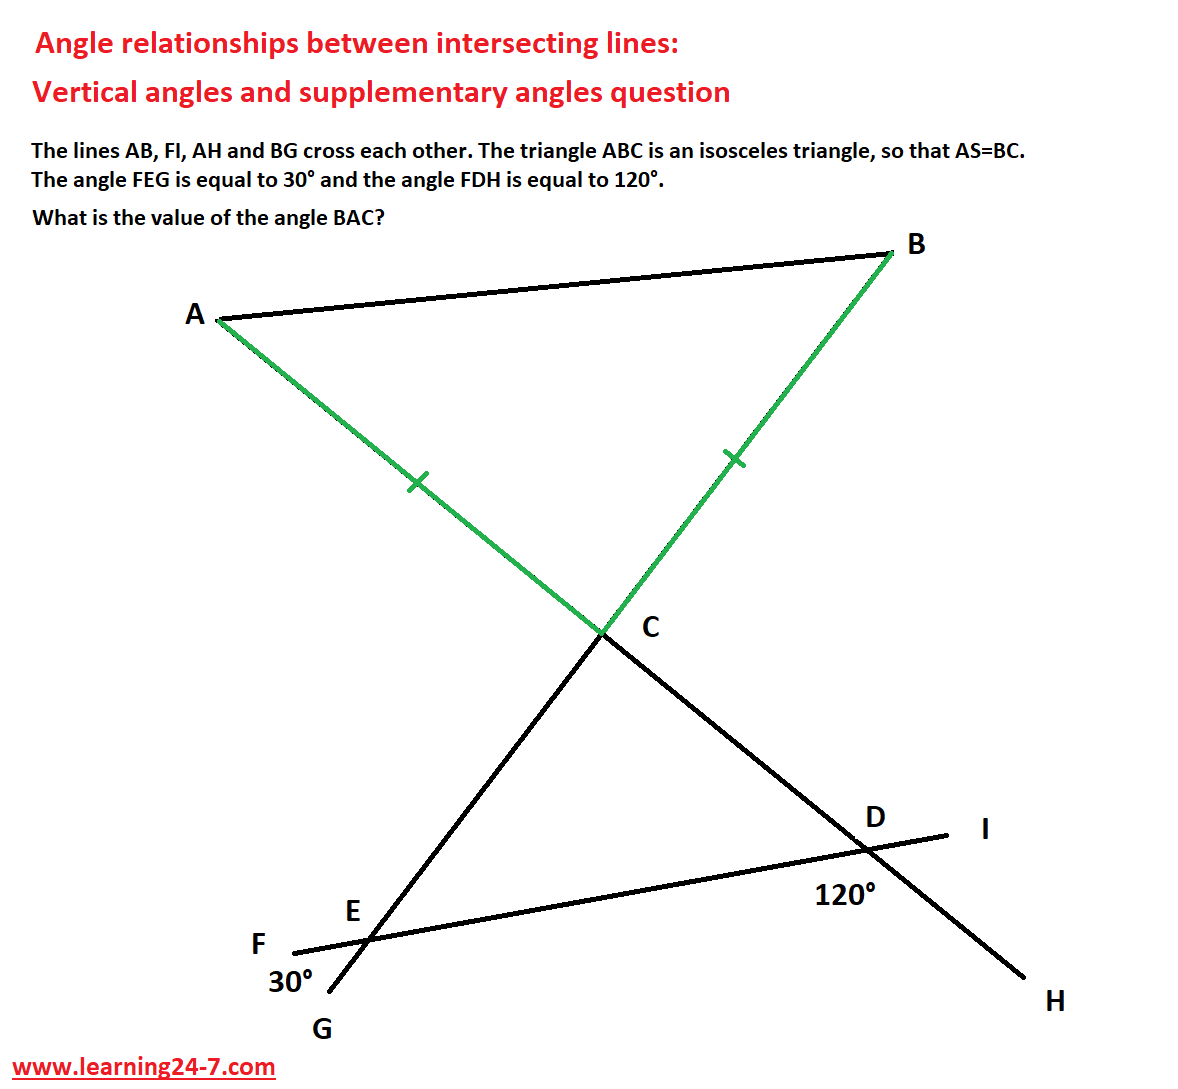 Angle relationships between intersecting lines